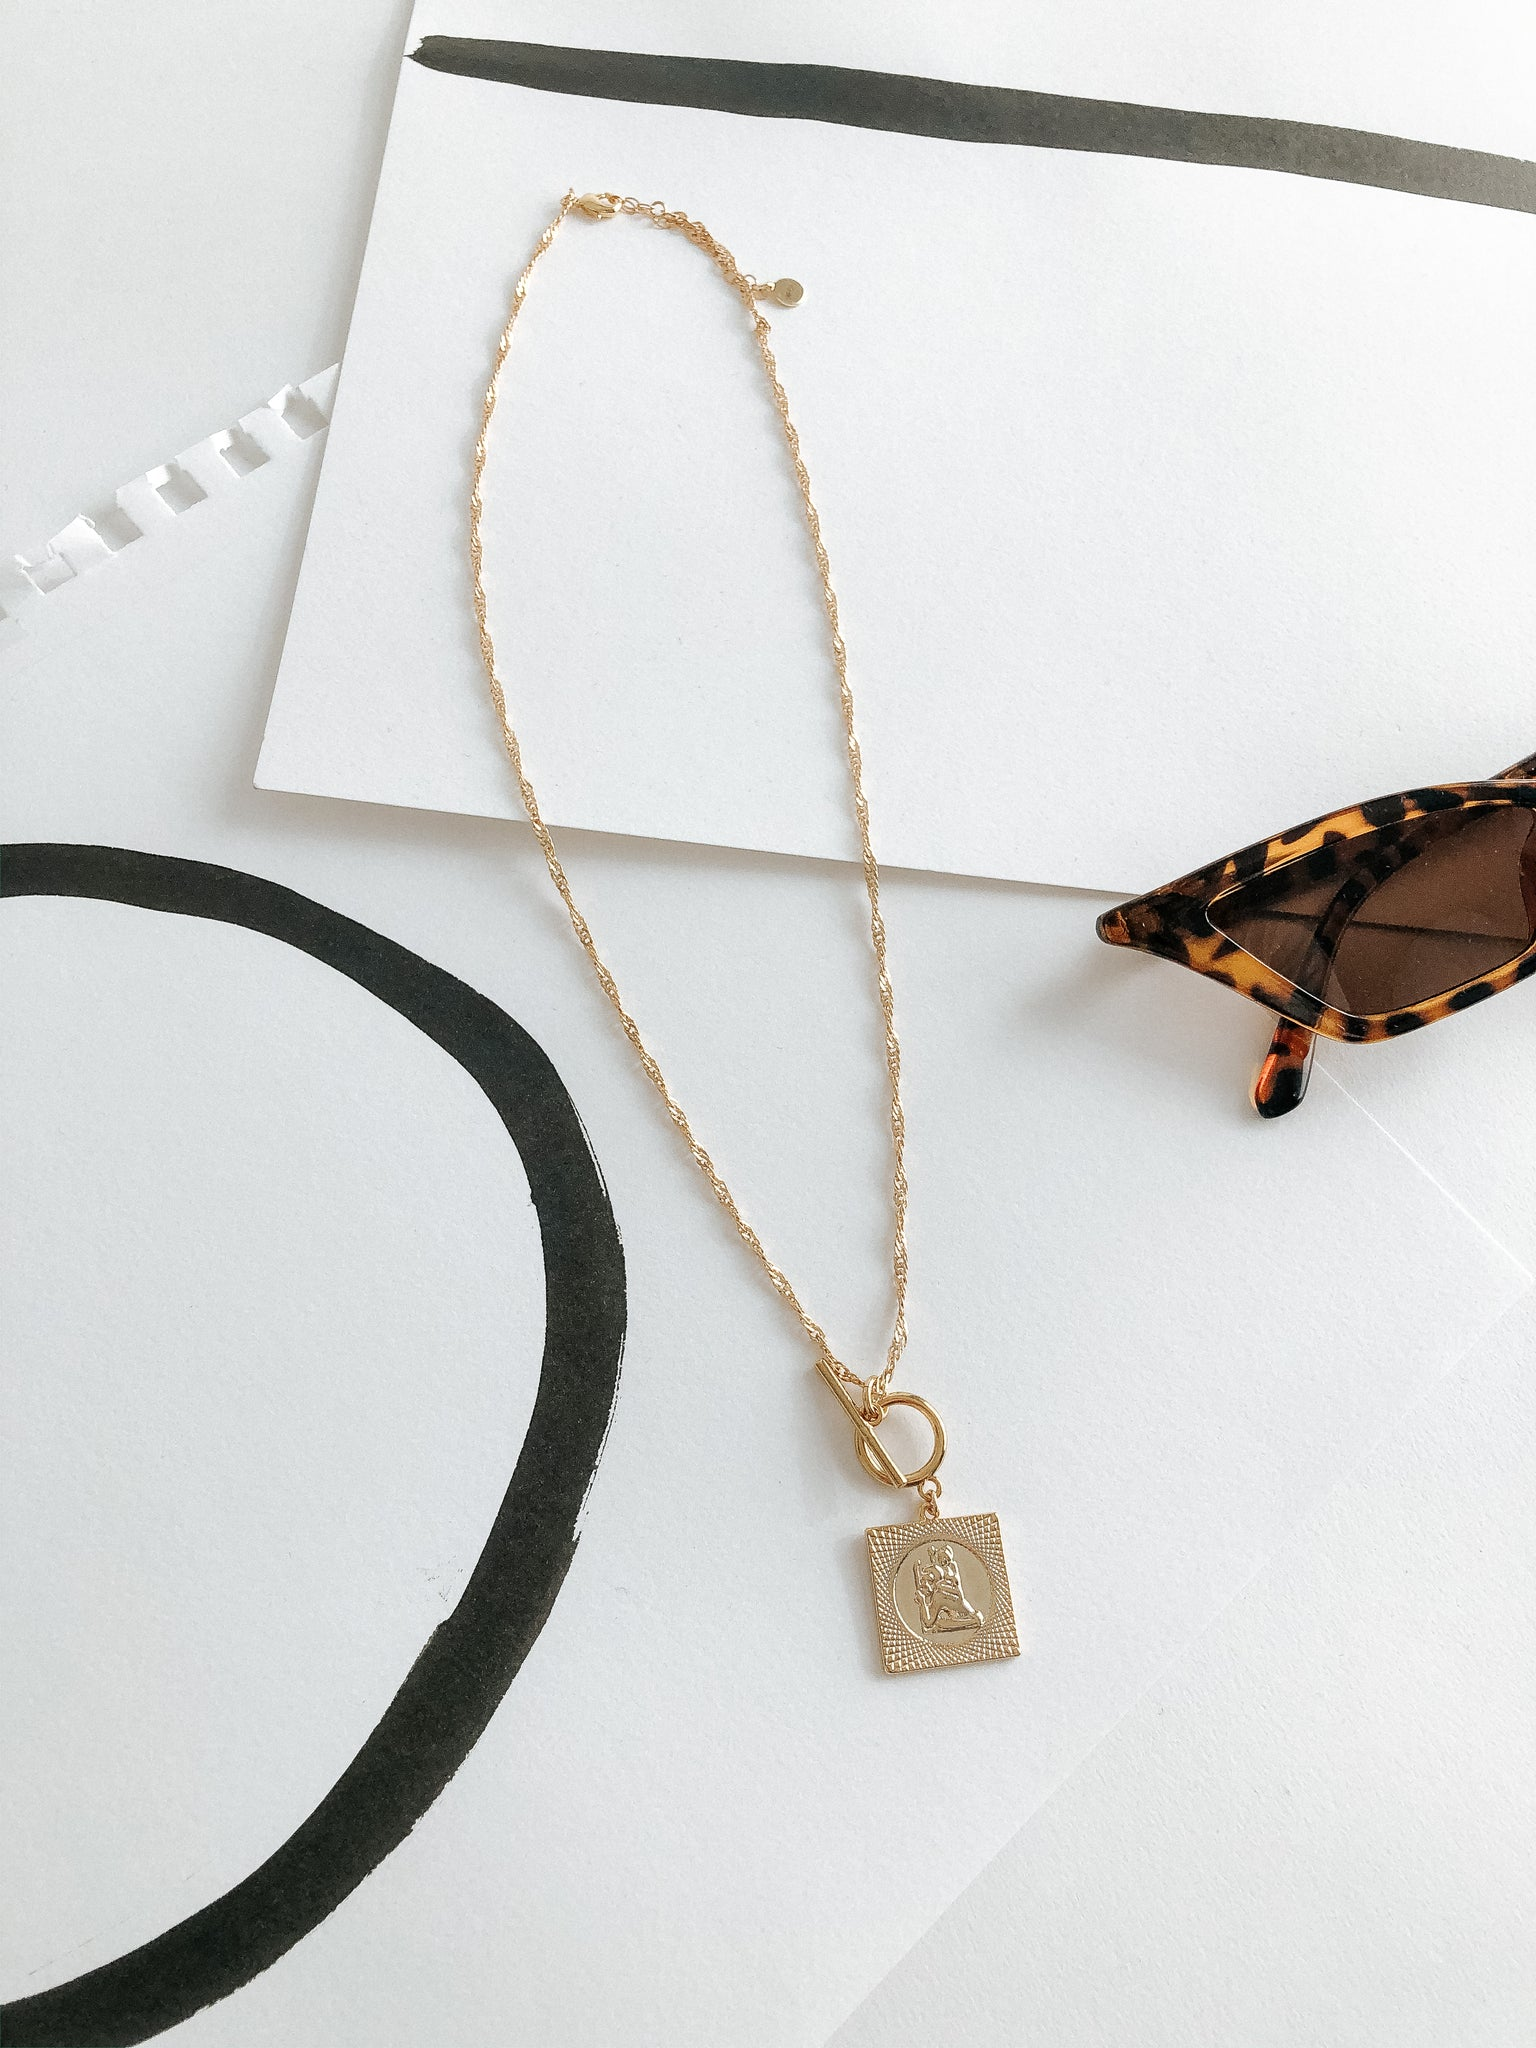 The Nile Lock Necklace